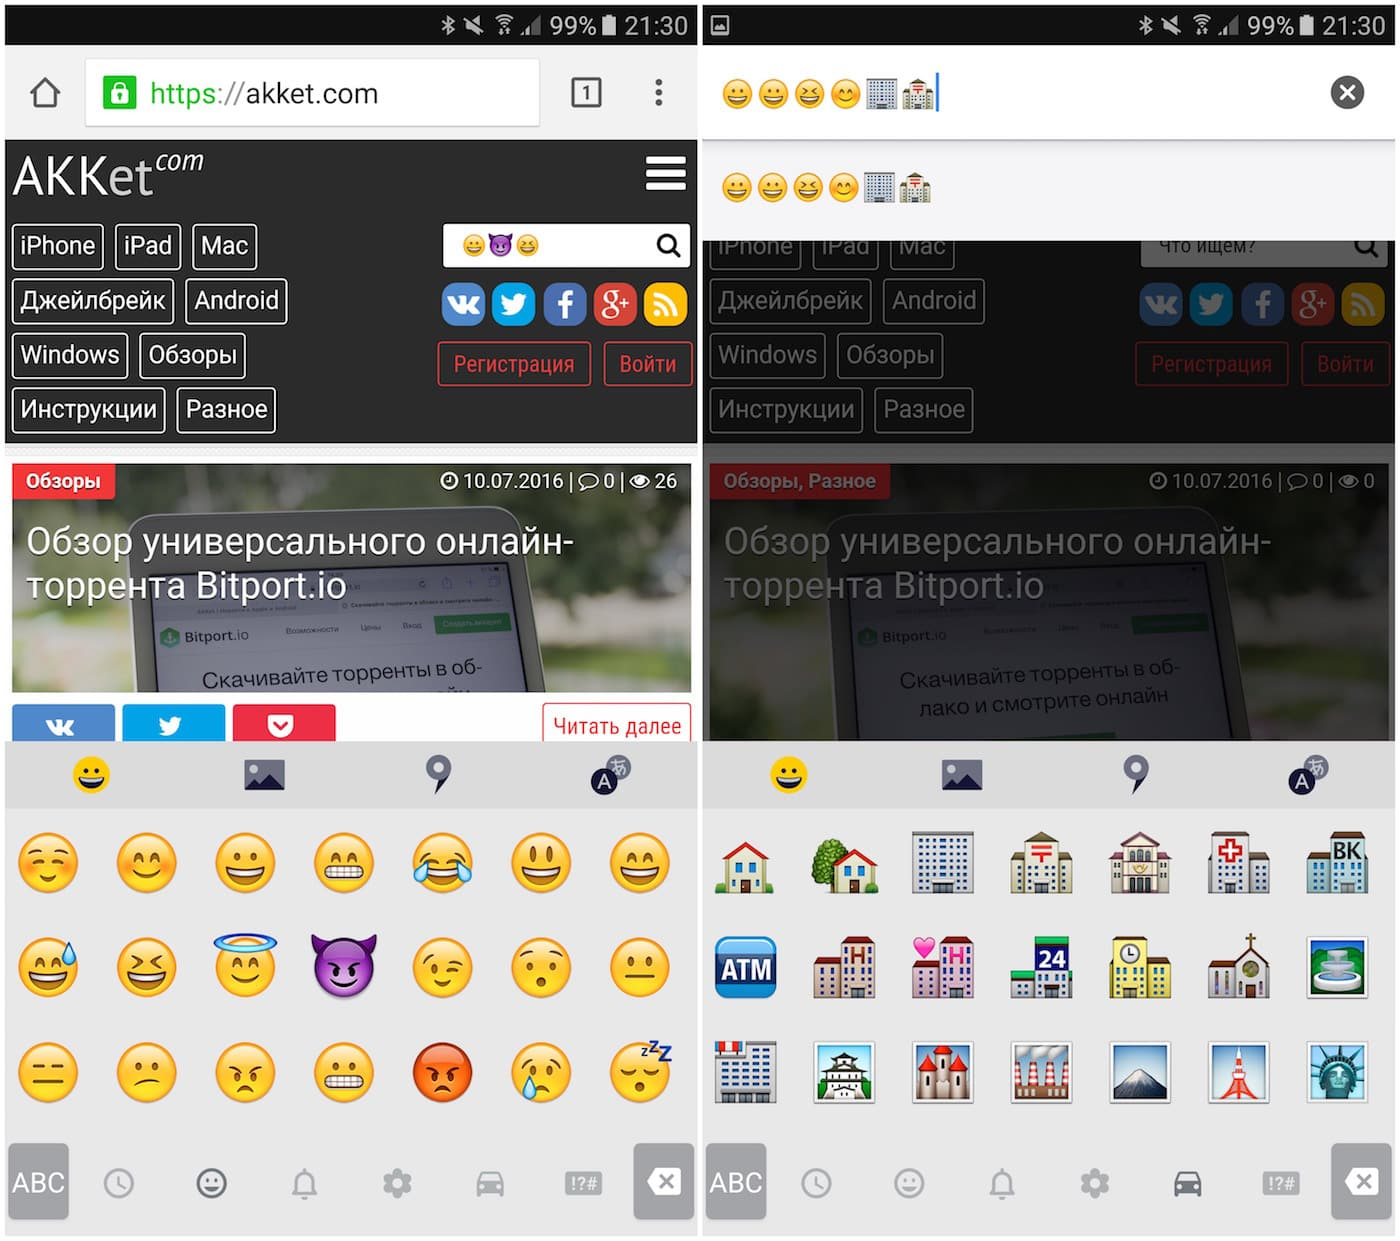 Emoji Switcher Android 6.0.1 Marshmallow iOS 9 2